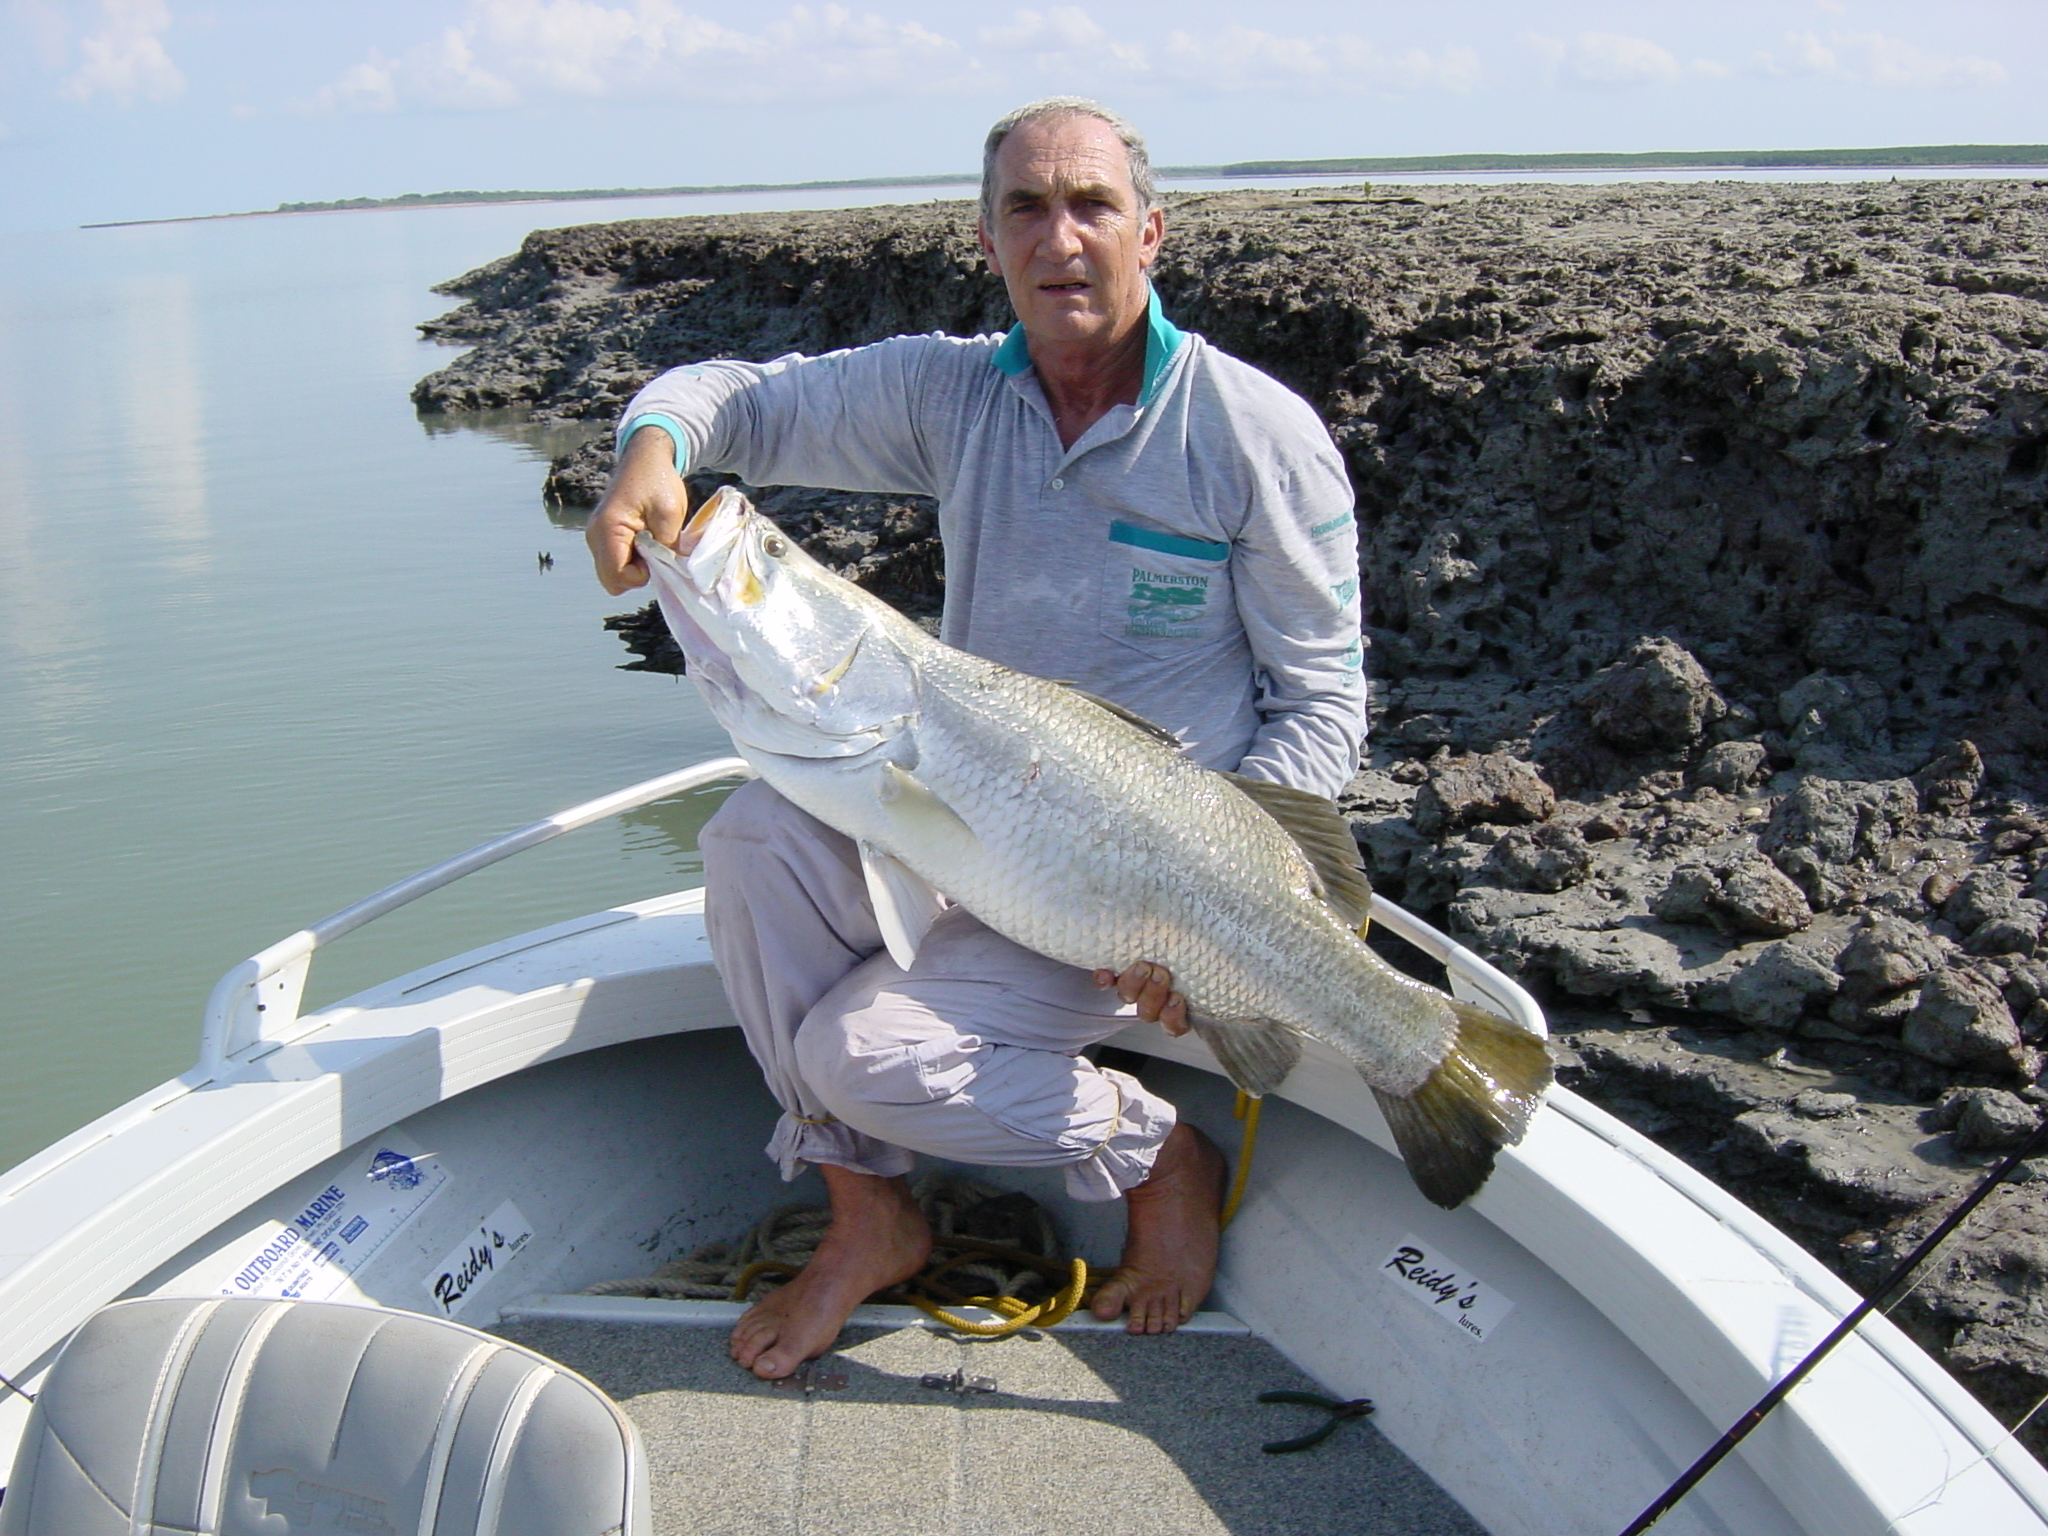 Jeff Reid with one of 14 fish caught ranging from 95cm to 117cm